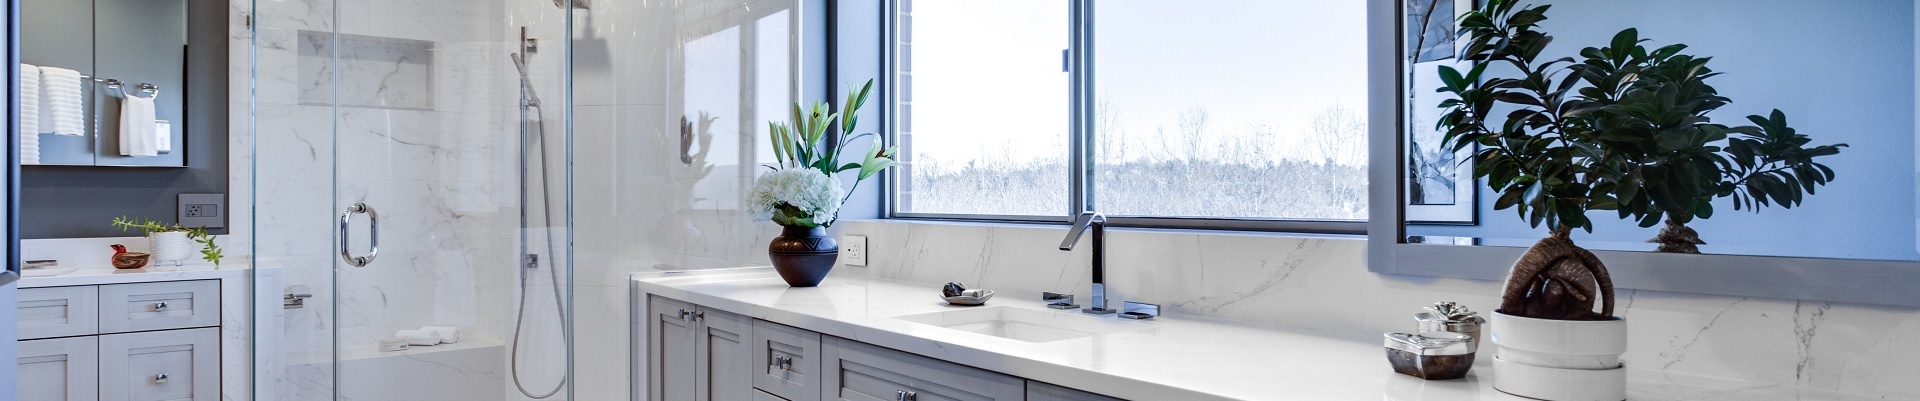 Reico Kitchen Bath - Bathroom cabinets richmond va